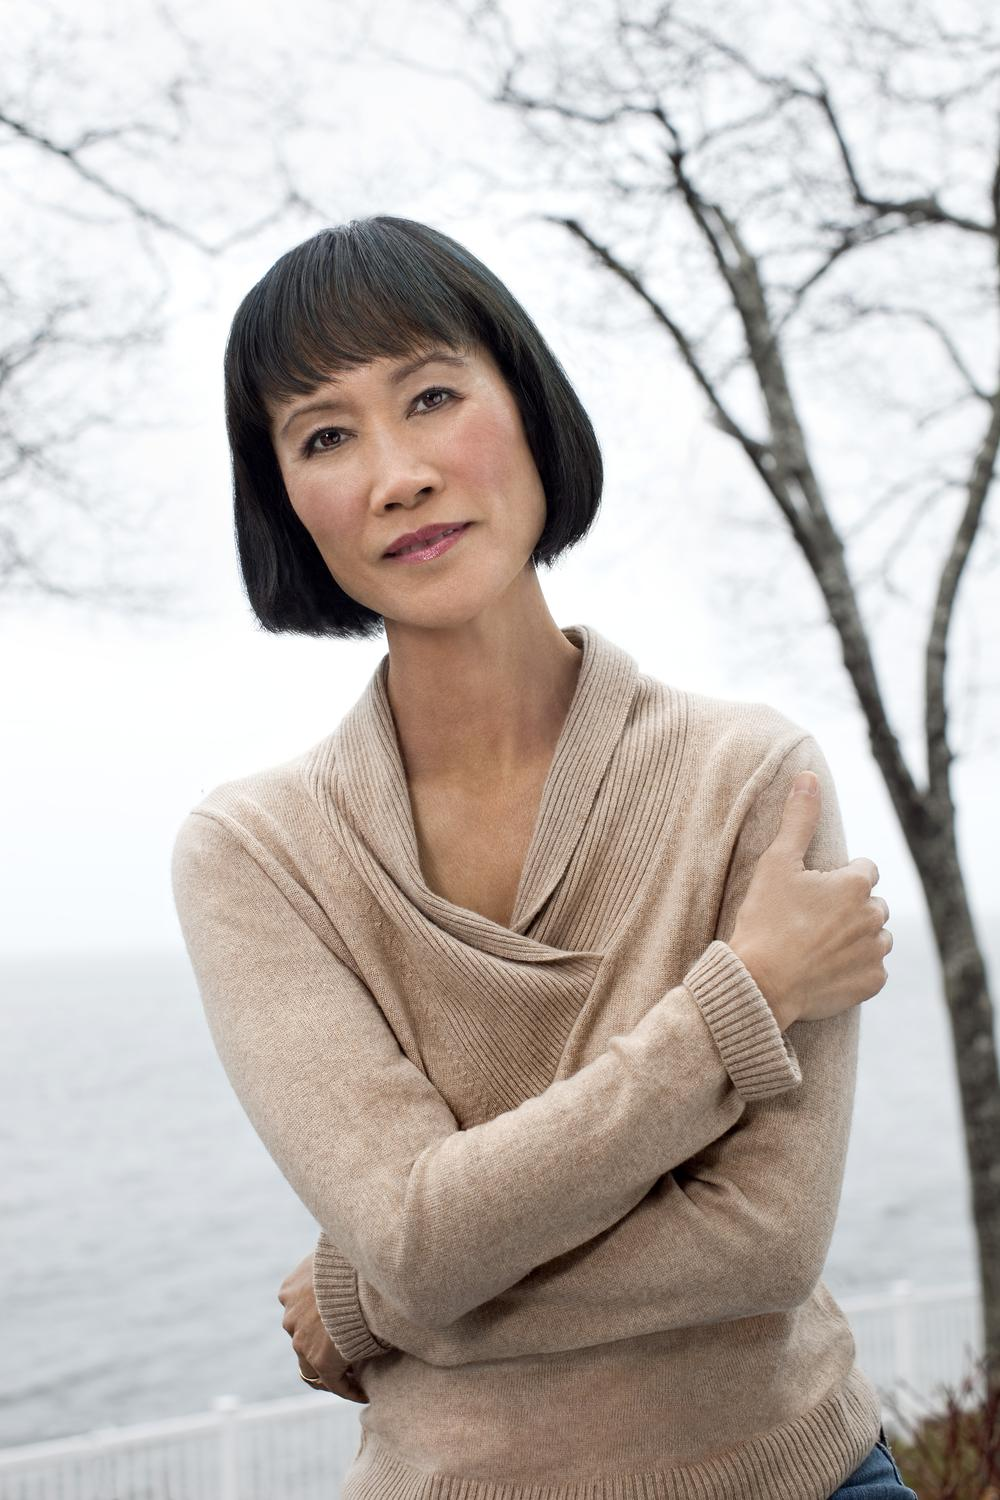 Tess Gerritsen author of 'The Silent Girl.' (Photo by Jessica Hill)